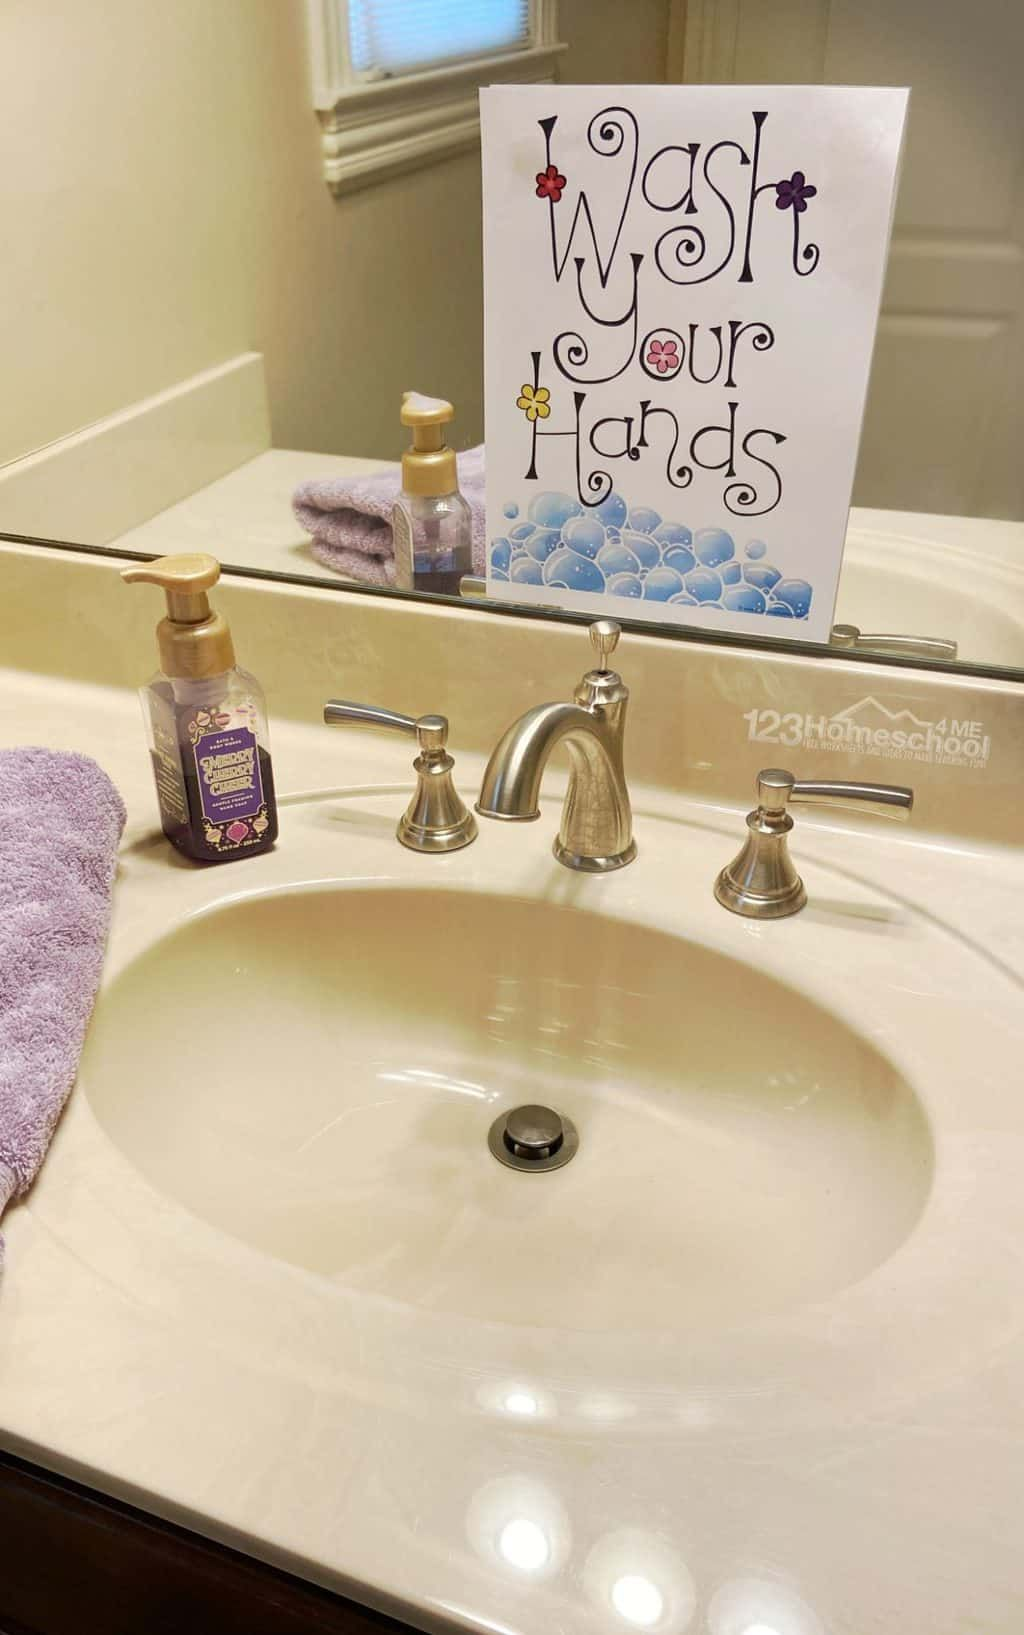 20 Free Hand Washing Signs For Kids In